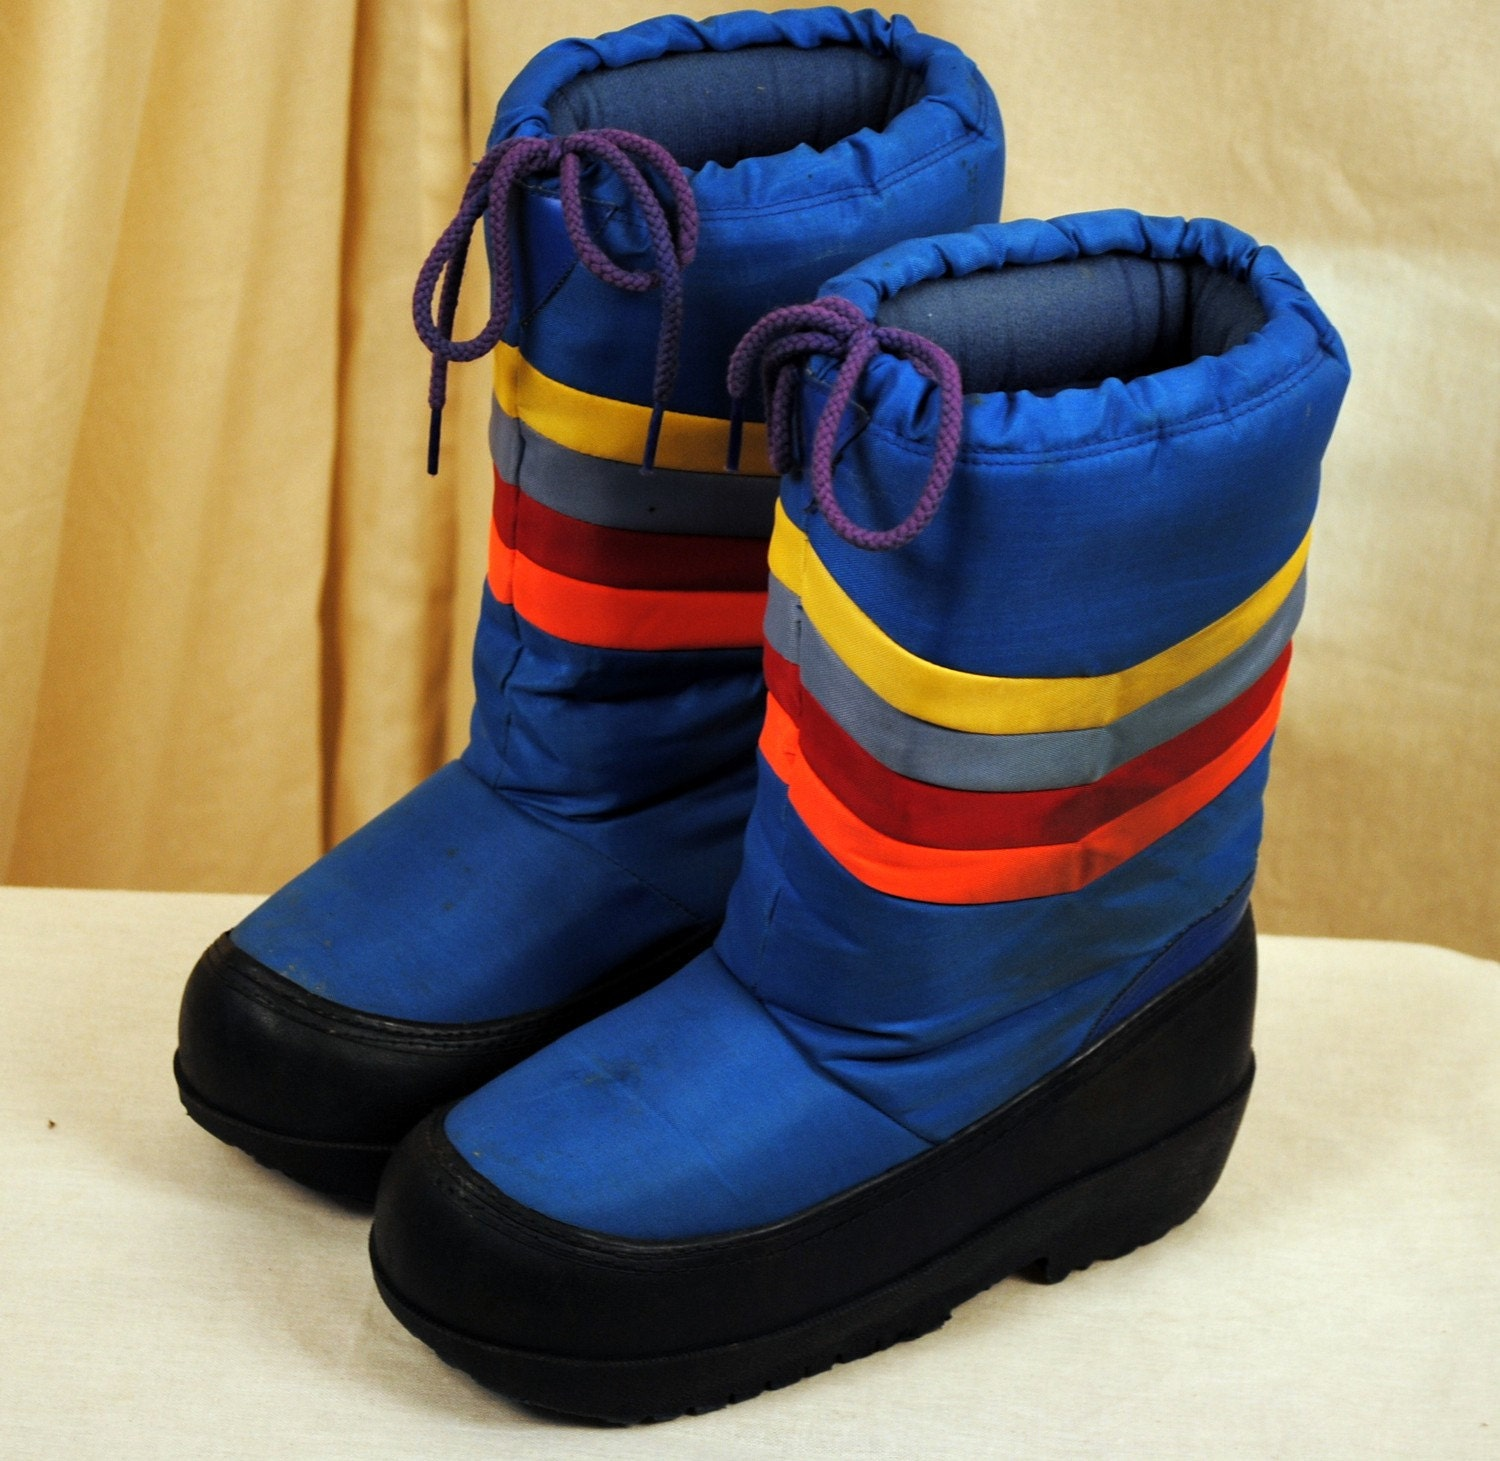 School Shoes For Snow